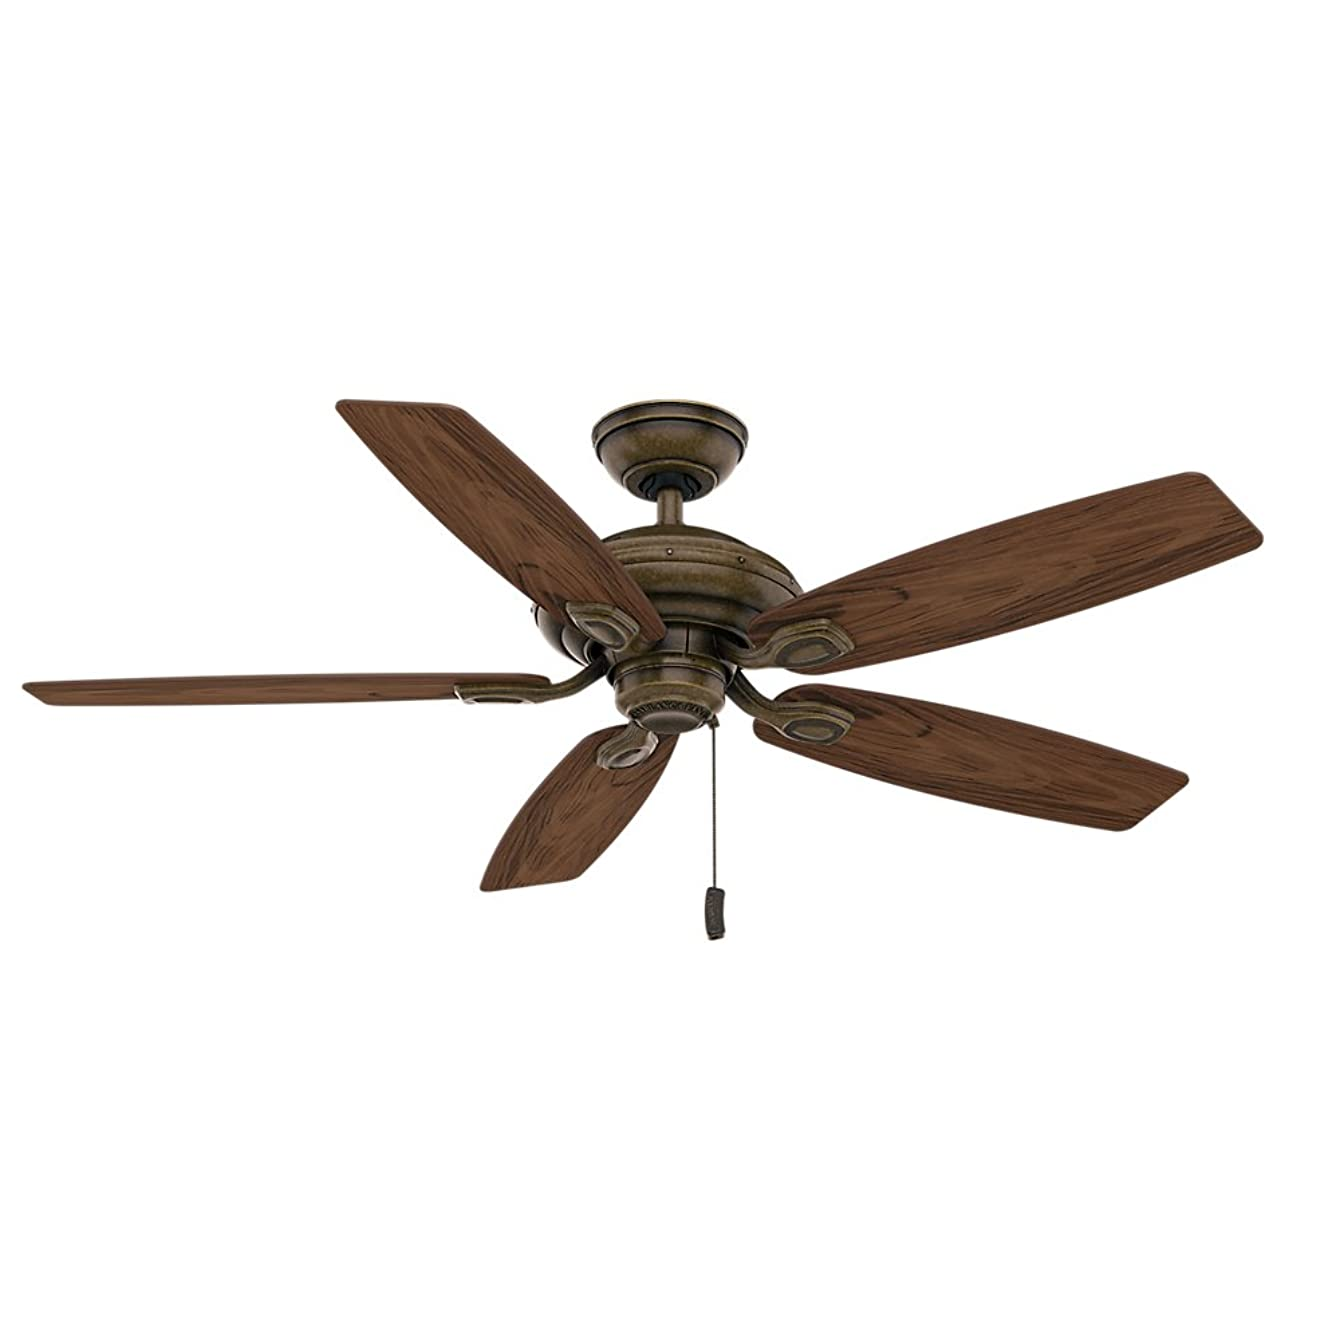 Casablanca 54036 Utopian 52-Inch 5-Blade ETL Rated Ceiling Fan, Aged Bronze with Dark Walnut all-Weather Blades